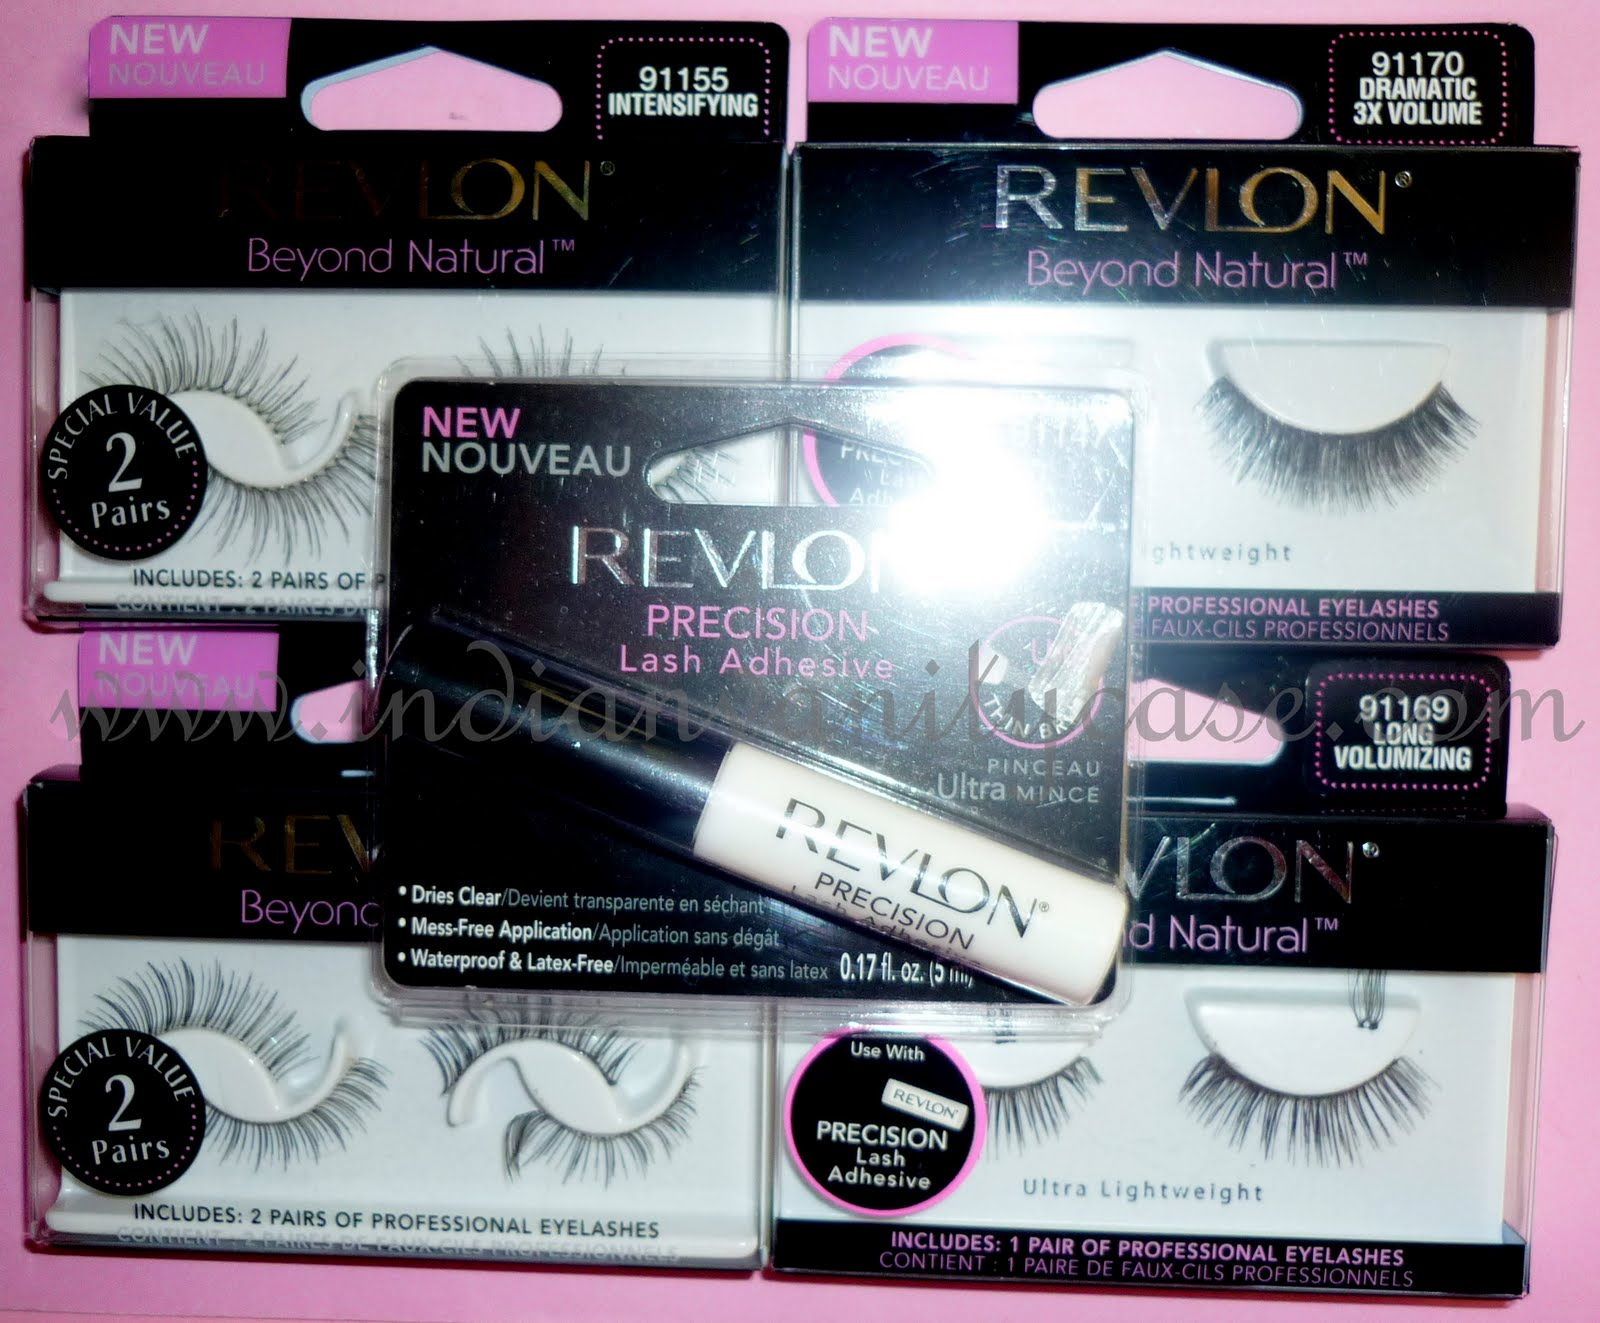 a5204e9ec45 Revlon Beyond Natural False Eyelashes are professional eyelashes that are  ultra lightweight, come with a Precision Lash Adhesive, and are re-usable  with ...